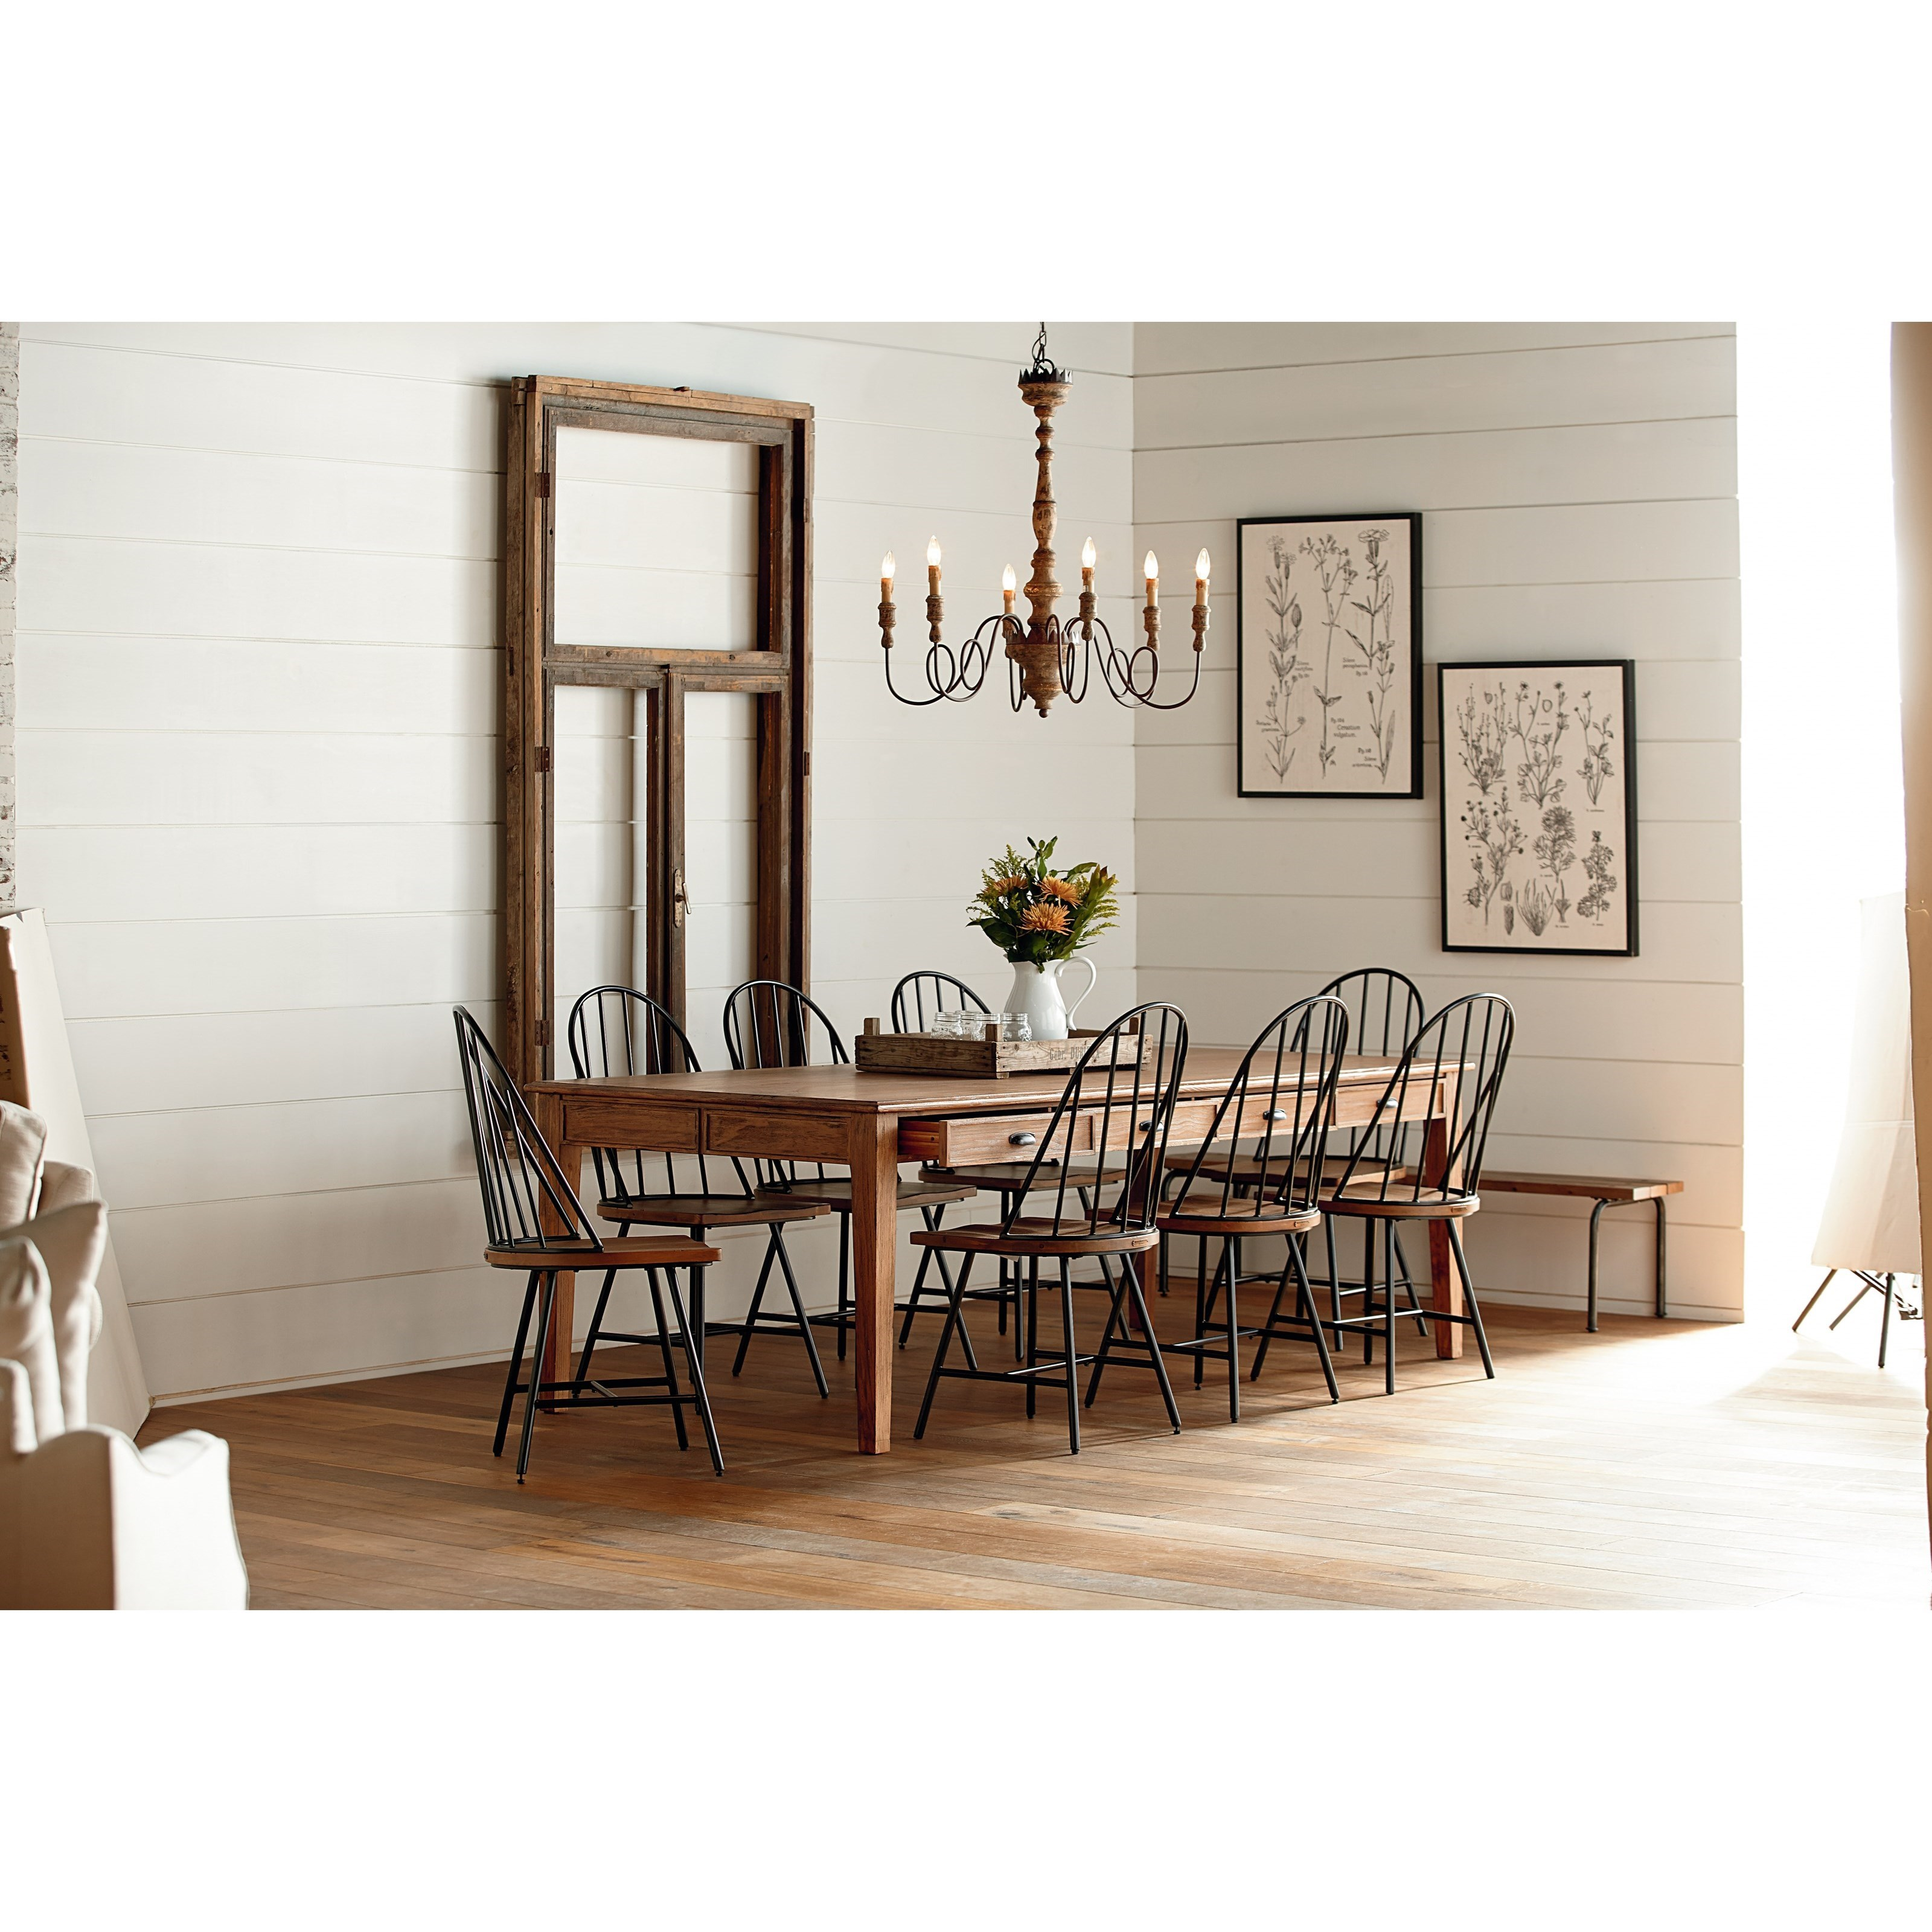 Joanna Gaines Farmhouse Dining Room Magnolia Home By Joanna Gaines Farmhouse 10 Piece Dining